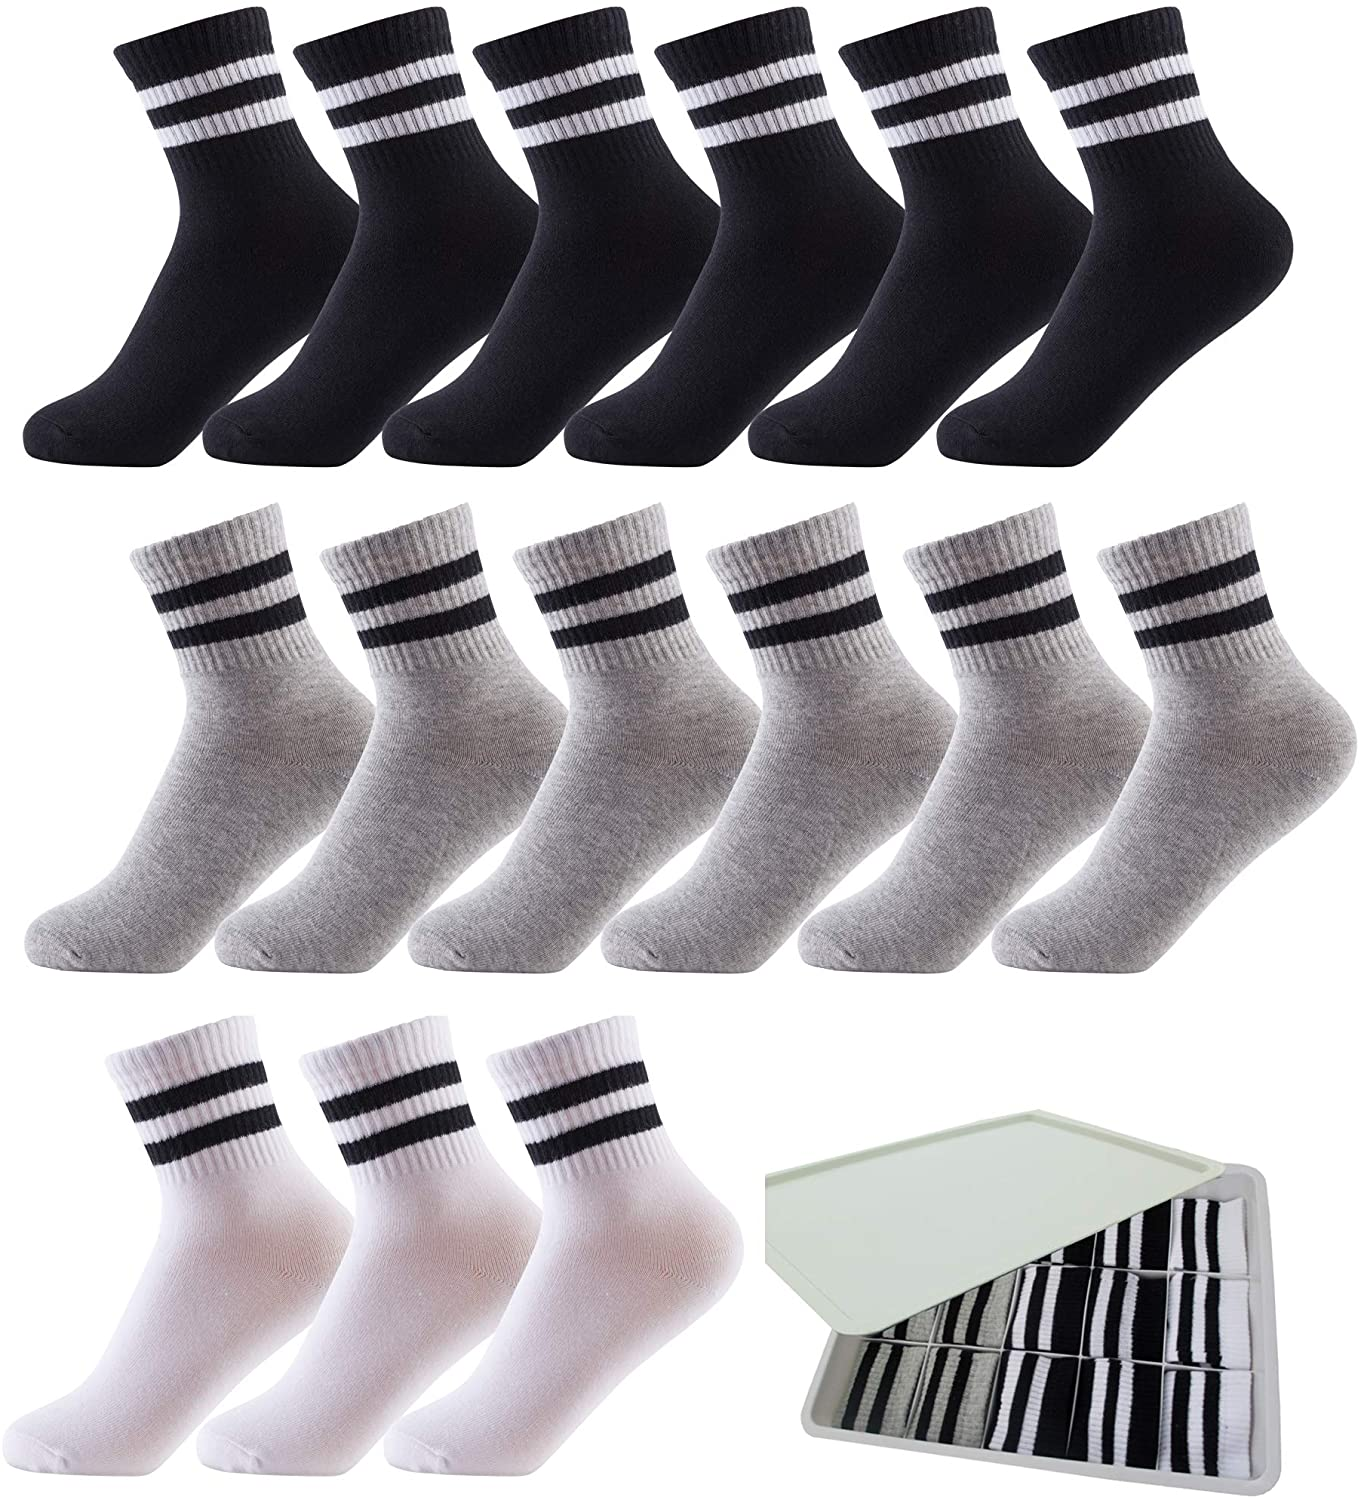 Oohmy Boys Socks 15 Packs for 13-15 Years Old Boys and Girls, Cotton Athletic Ankle Socks, Assorted Colors Black+White+Grey, Size XL/ Shoe Size 6-9/ Typical Age 13-15 years old and Up